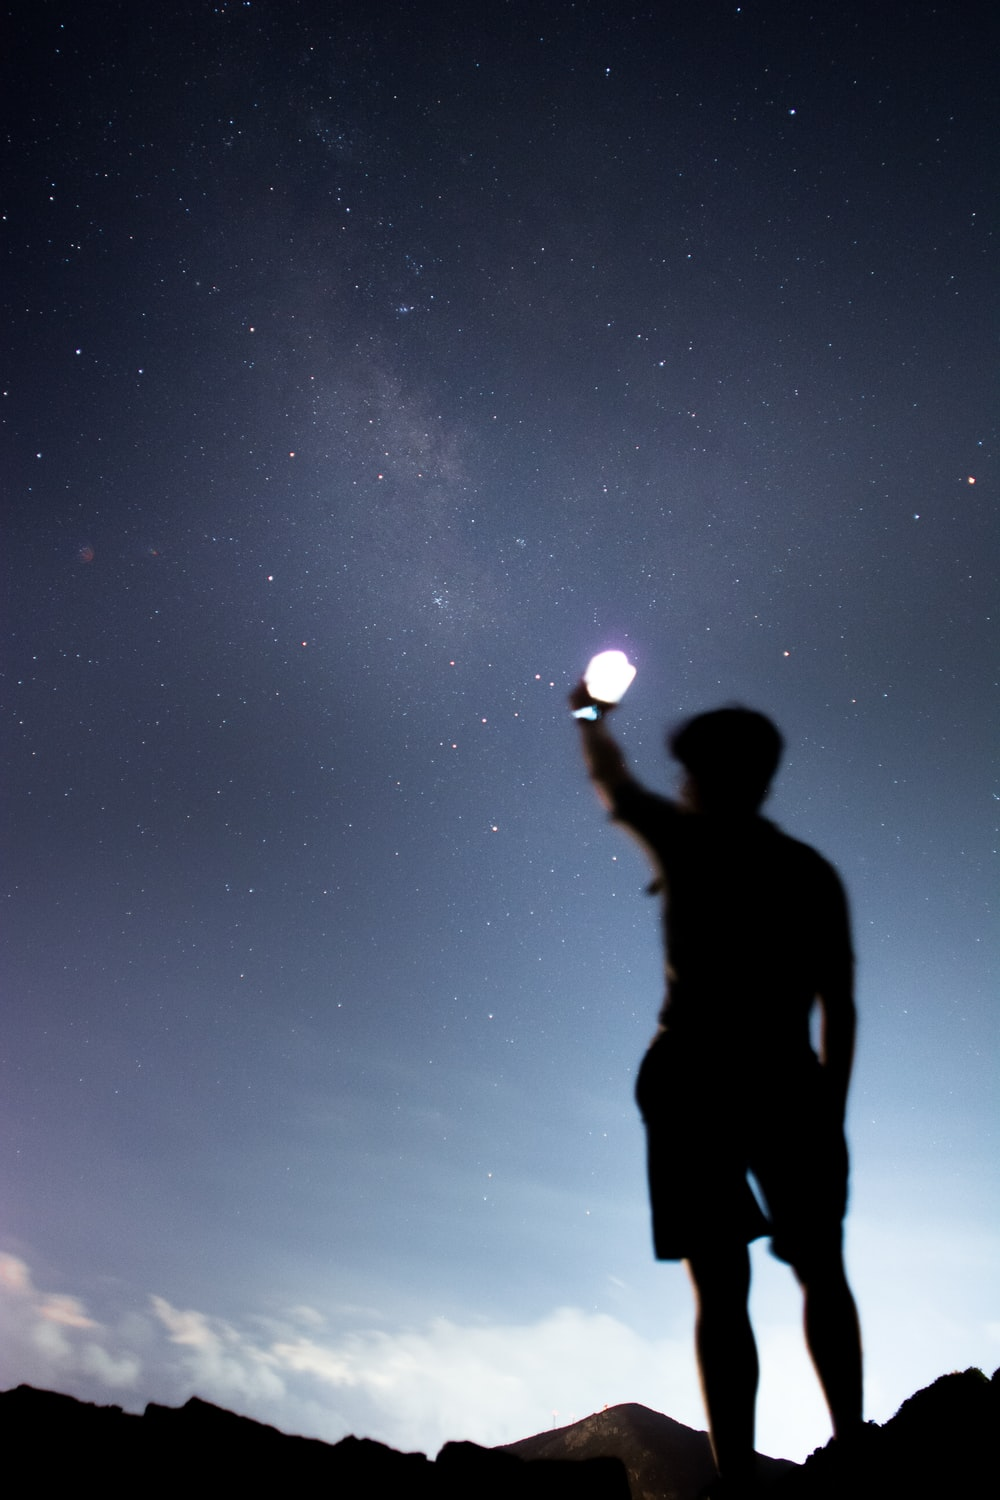 silhouette of man holding lighted light during night time